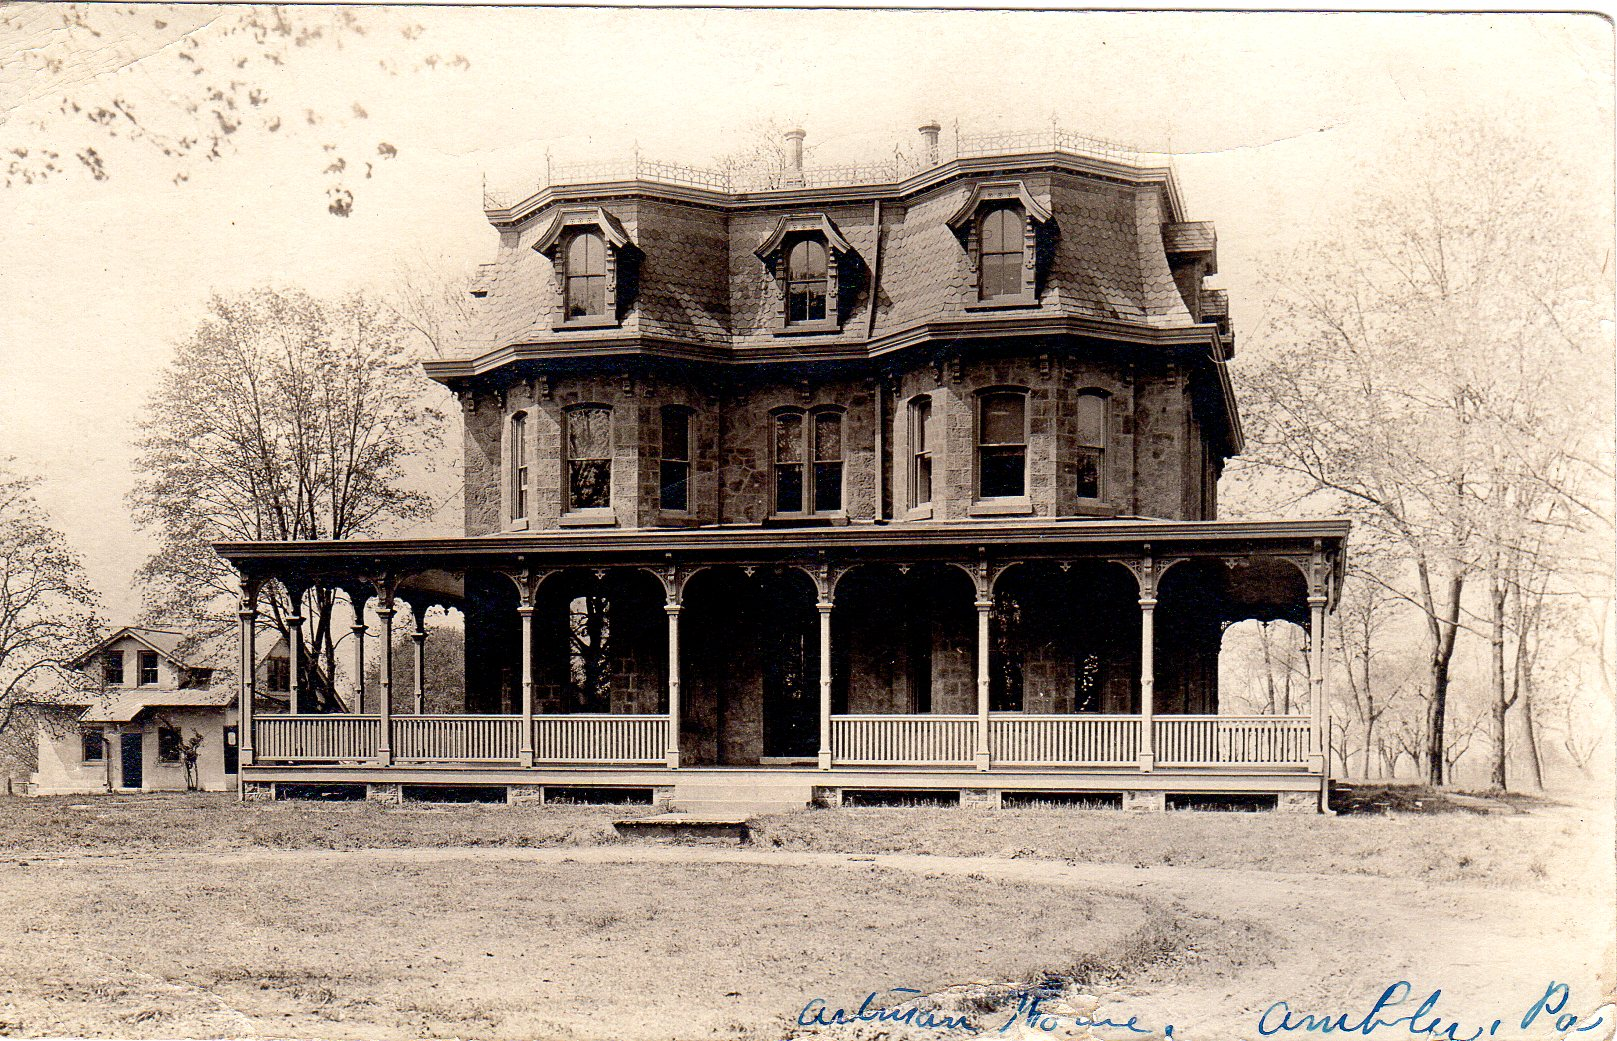 Post Card Collection (E Simon)_2682_40_Artman Home, Ambler, Pa_26 Jun 1924